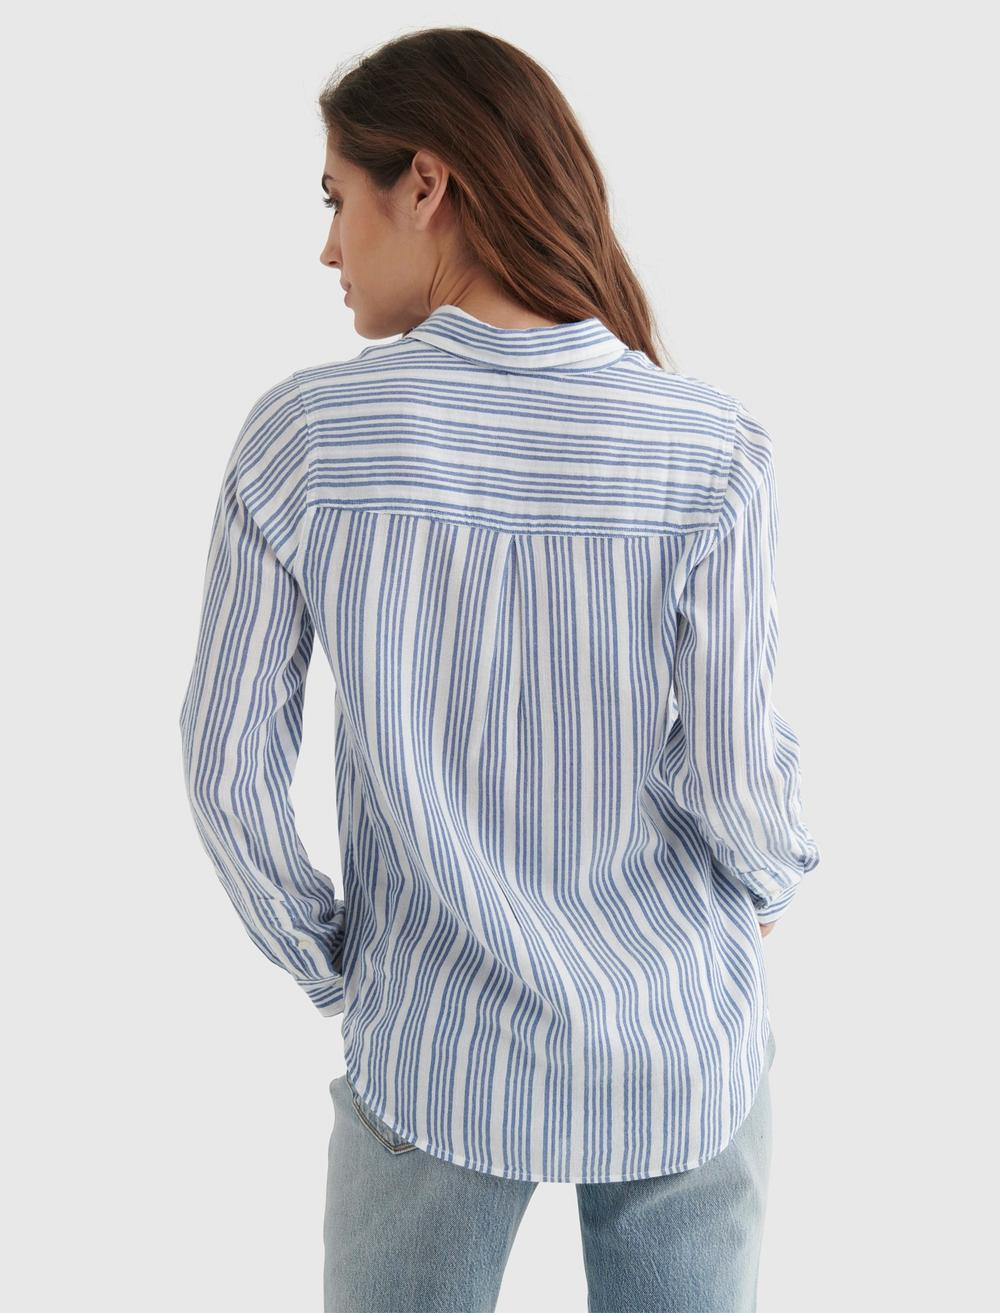 CLASSIC STRIPED WOVEN SHIRT, image 5